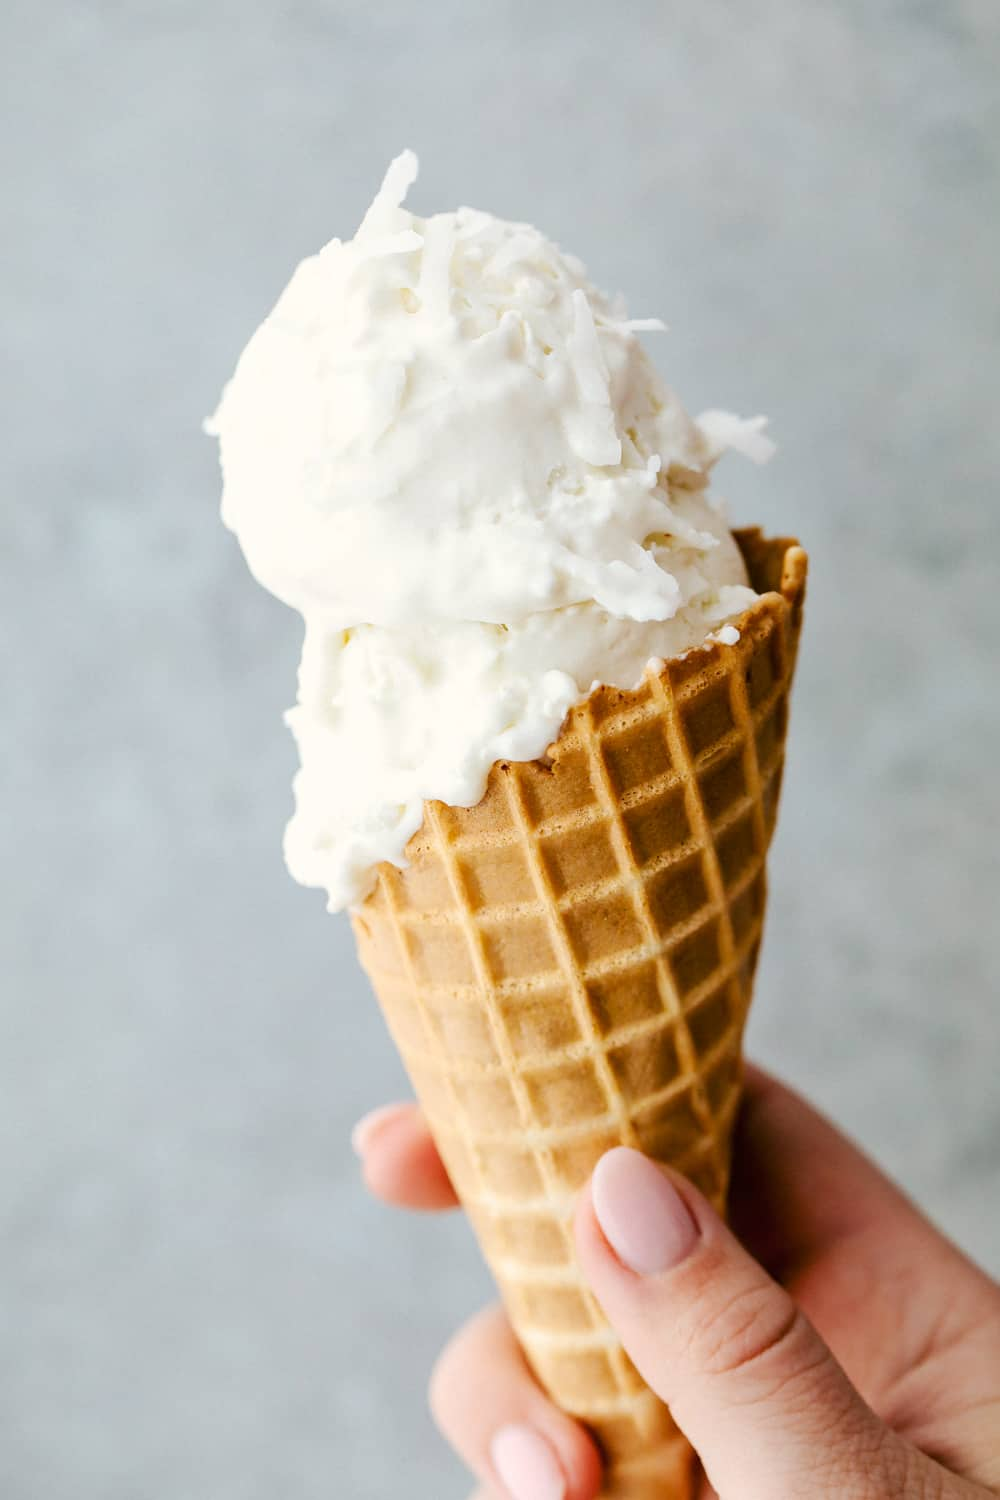 Keto ice cream in a waffle cone with two scoops.